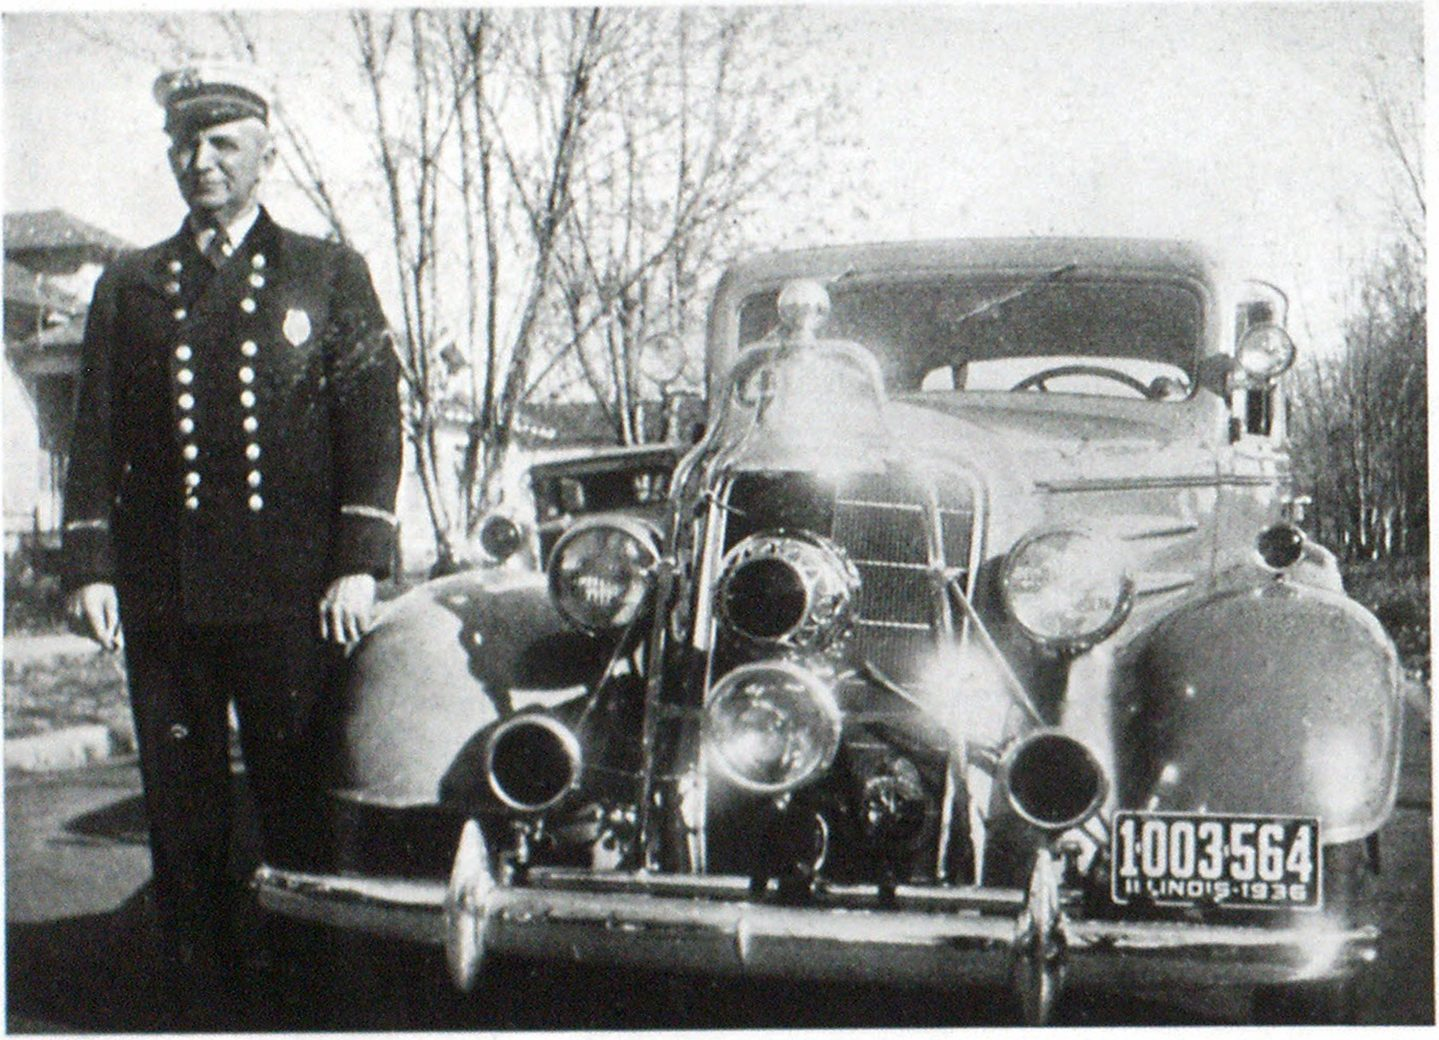 Chief Herring's Car Provided With Fog-Light Chief Albert Herring, Murphysboro, I11., has placed a S & M 50 candlepower fog light on his car and has found it very effective. He writes that they have some very bad fogs in the southern section of his state, and as he often answers calls to points fifty miles from Murphysboro, as a member of the Egyptian Fire Fighters Association, the light has proven of great value. Chief Herring is shown standing beside his car.